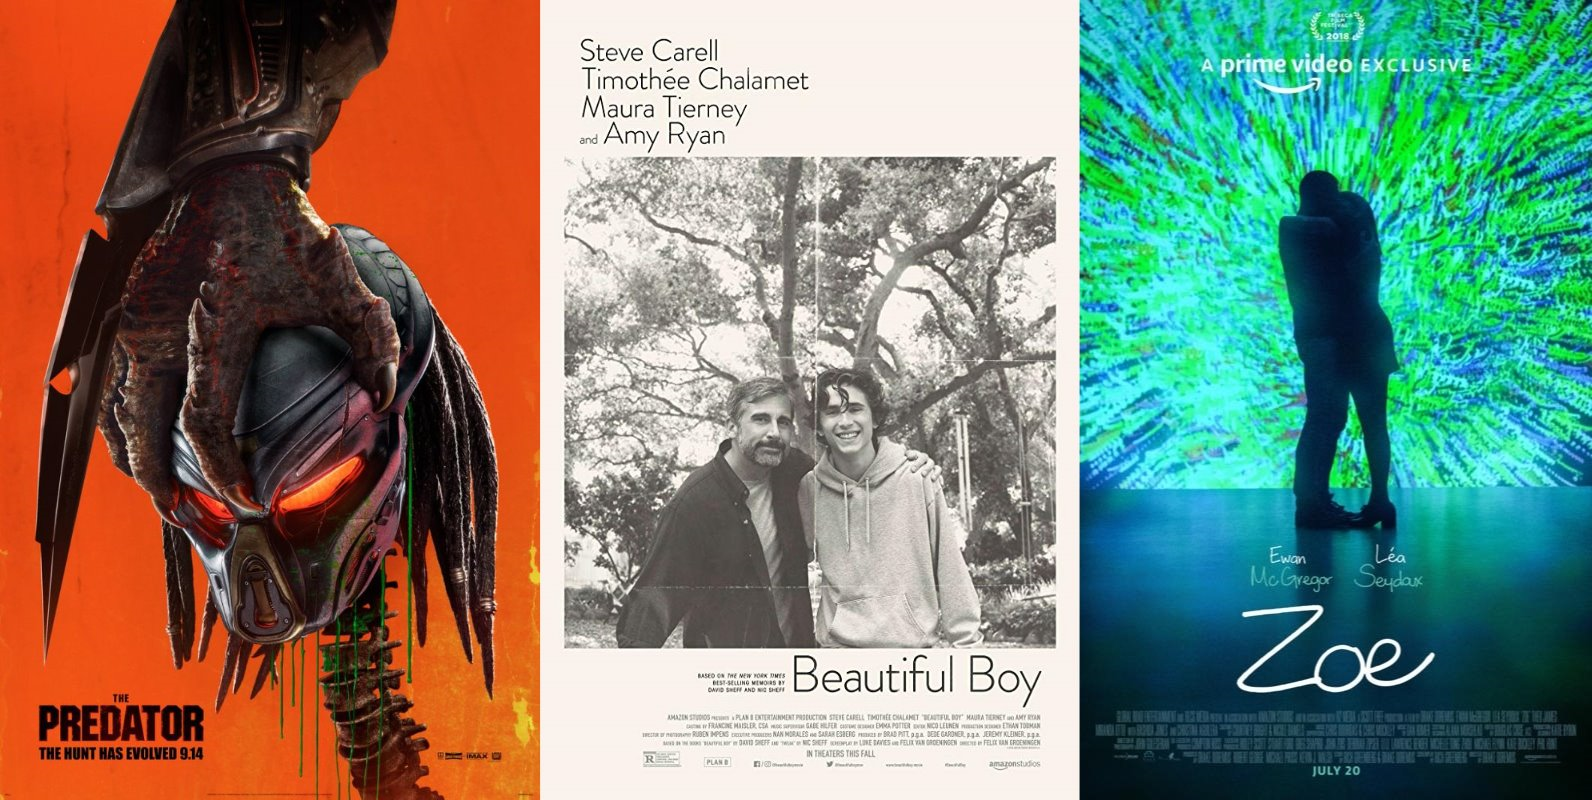 Trailer-Watchin' Wednesday - The Predator, Beautiful Boy, Zoe